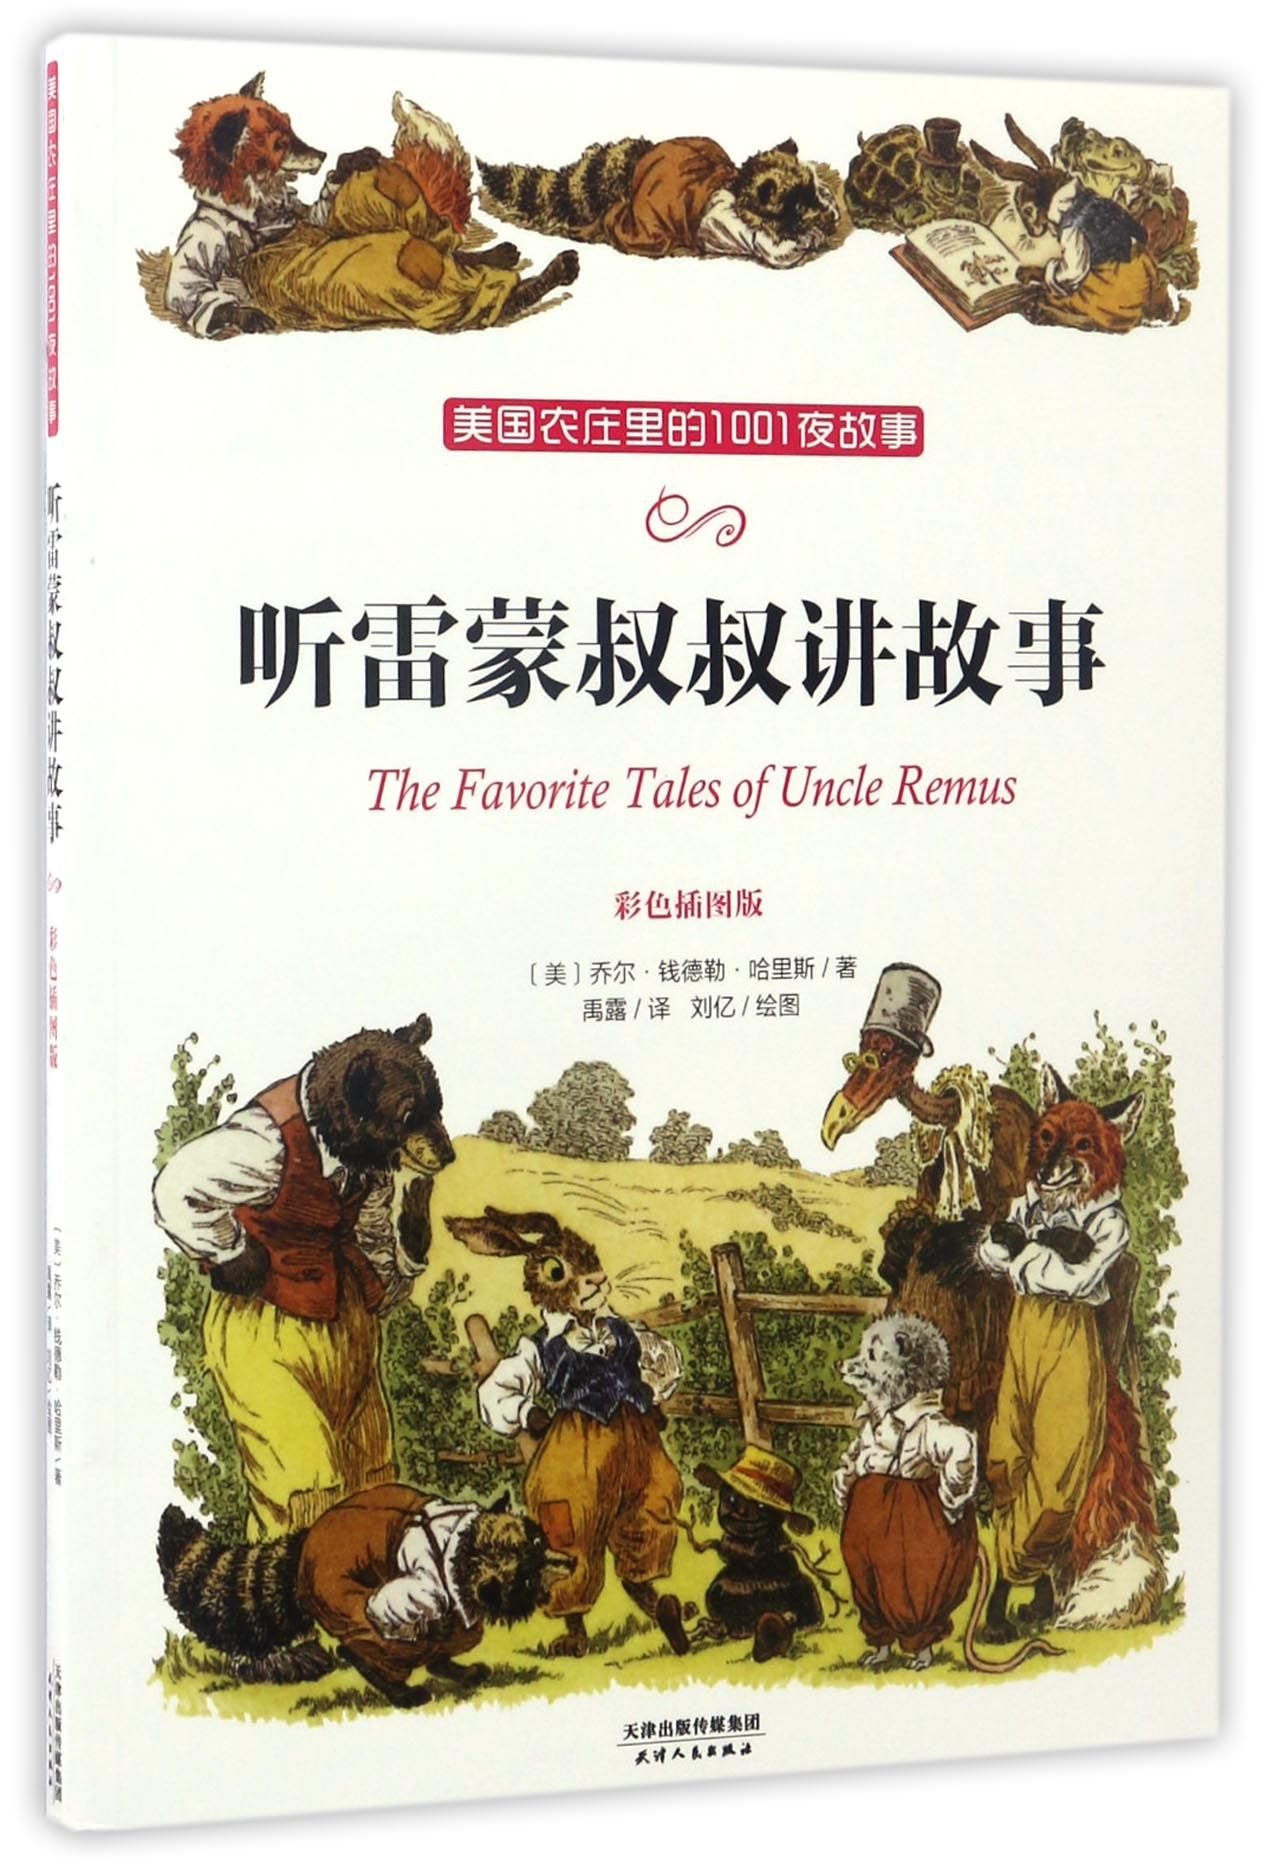 Read Online The Favorite Tales of Uncle Remus (Chinese Edition) pdf